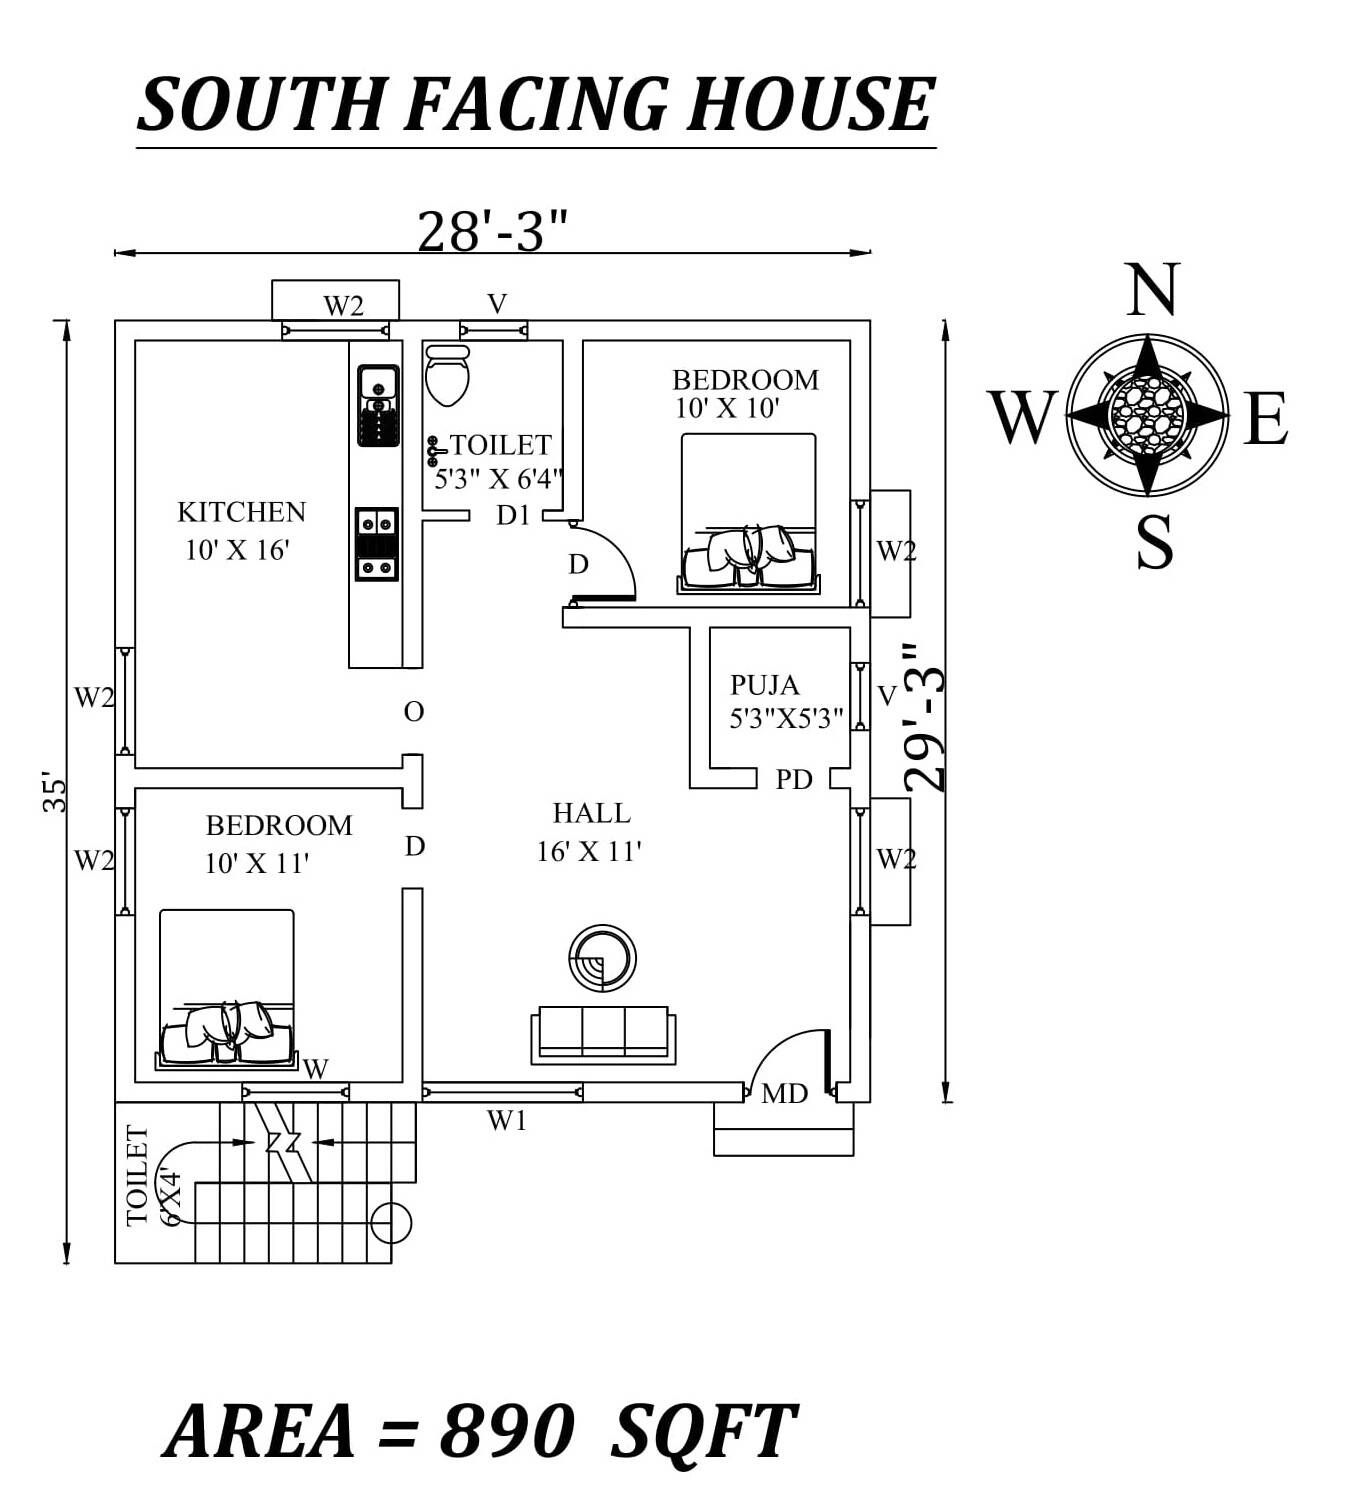 28 x35 2bhk Awesome South facing House Plan As Per Vastu Shastra Autocad DWG and Pdf file details